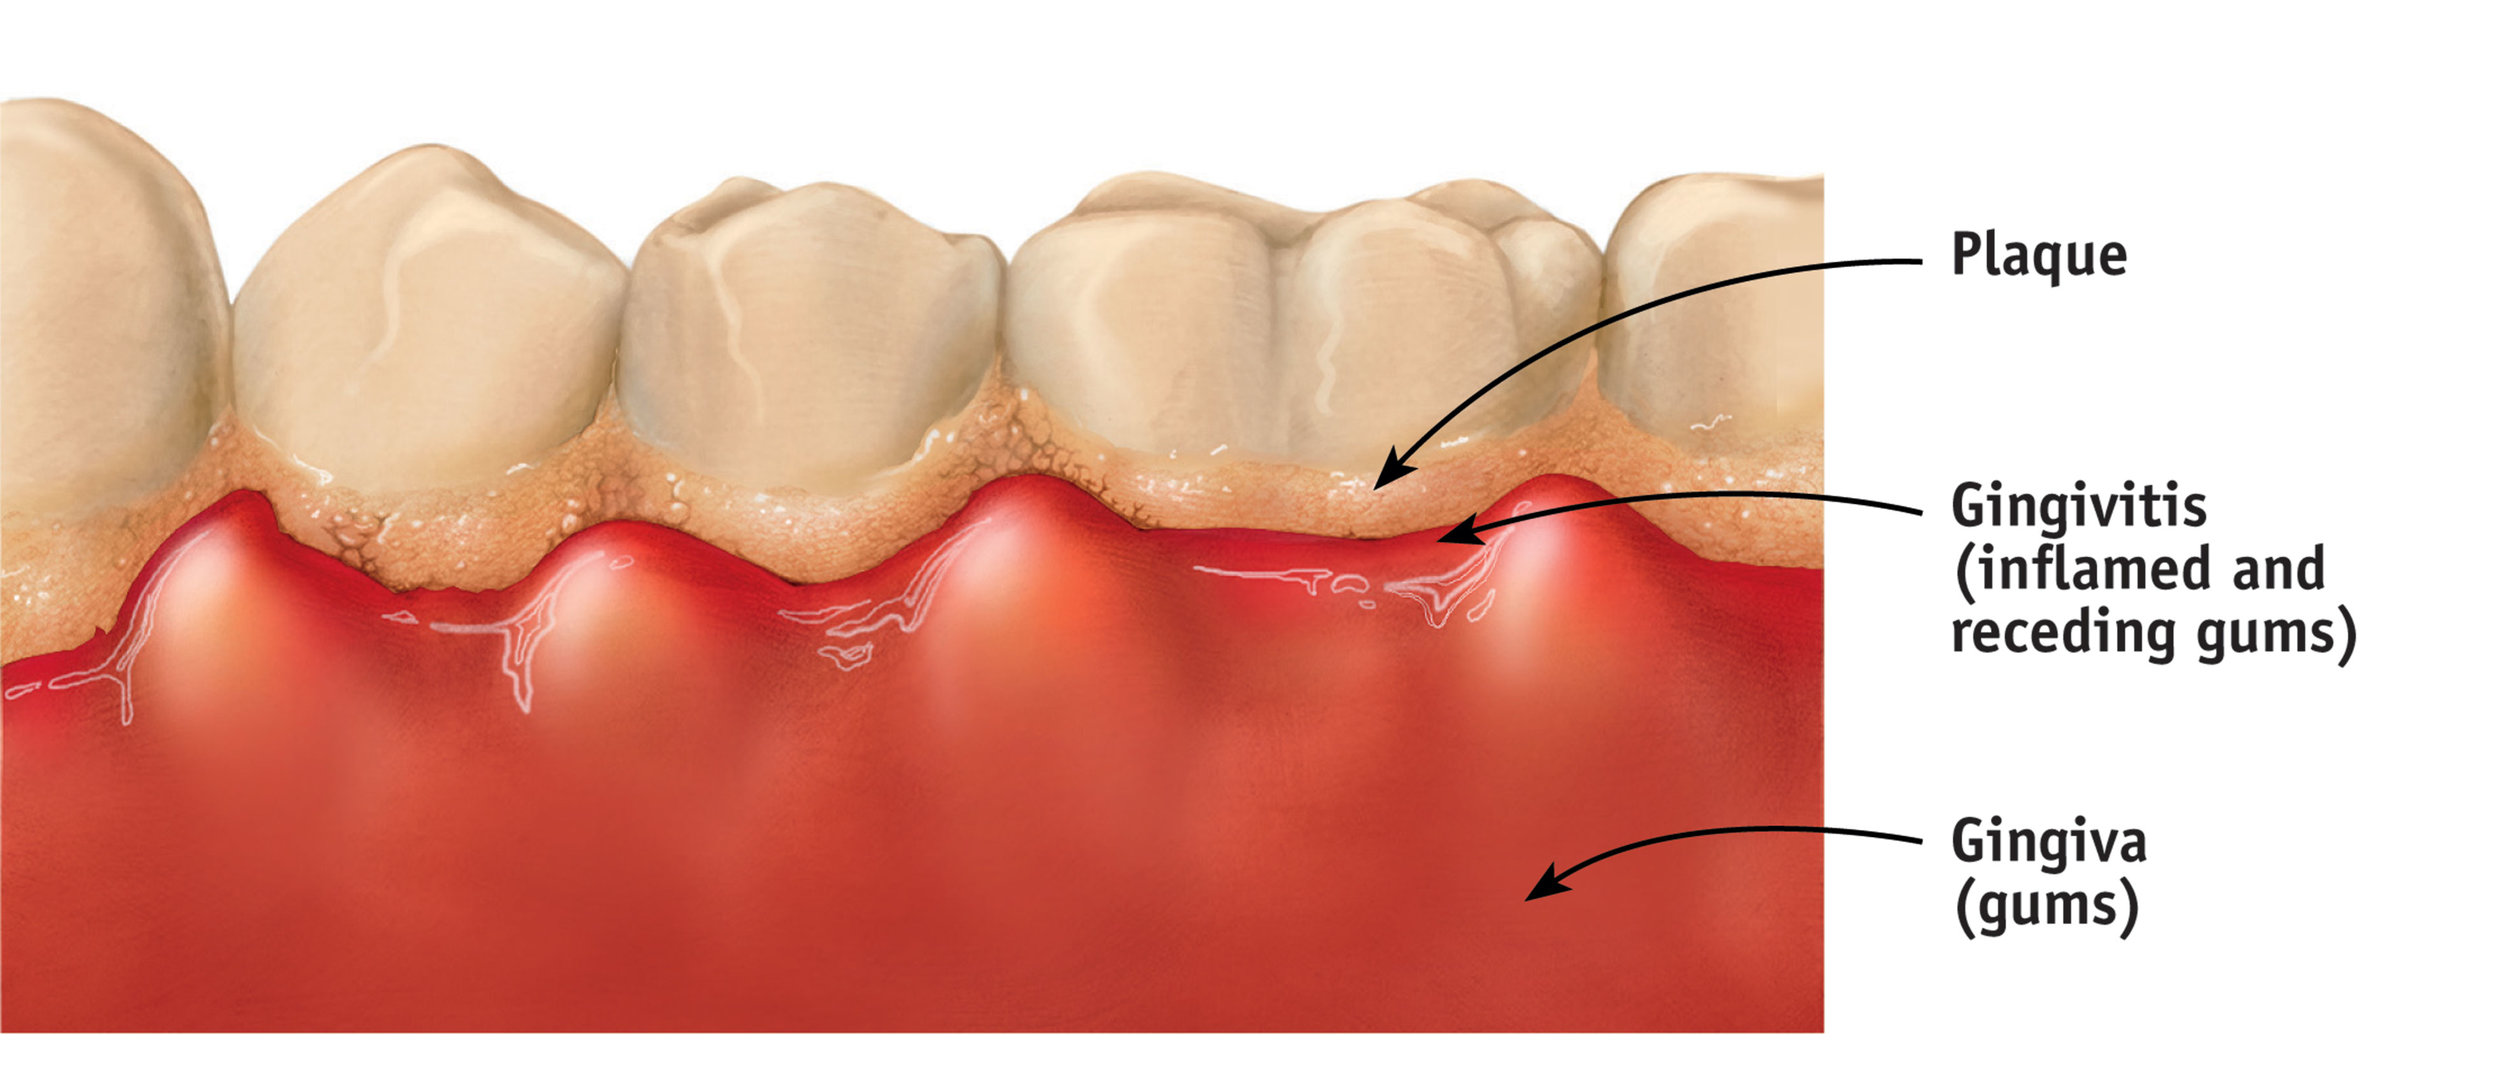 Plaque build up and gingivitis causes bleeding and swelling